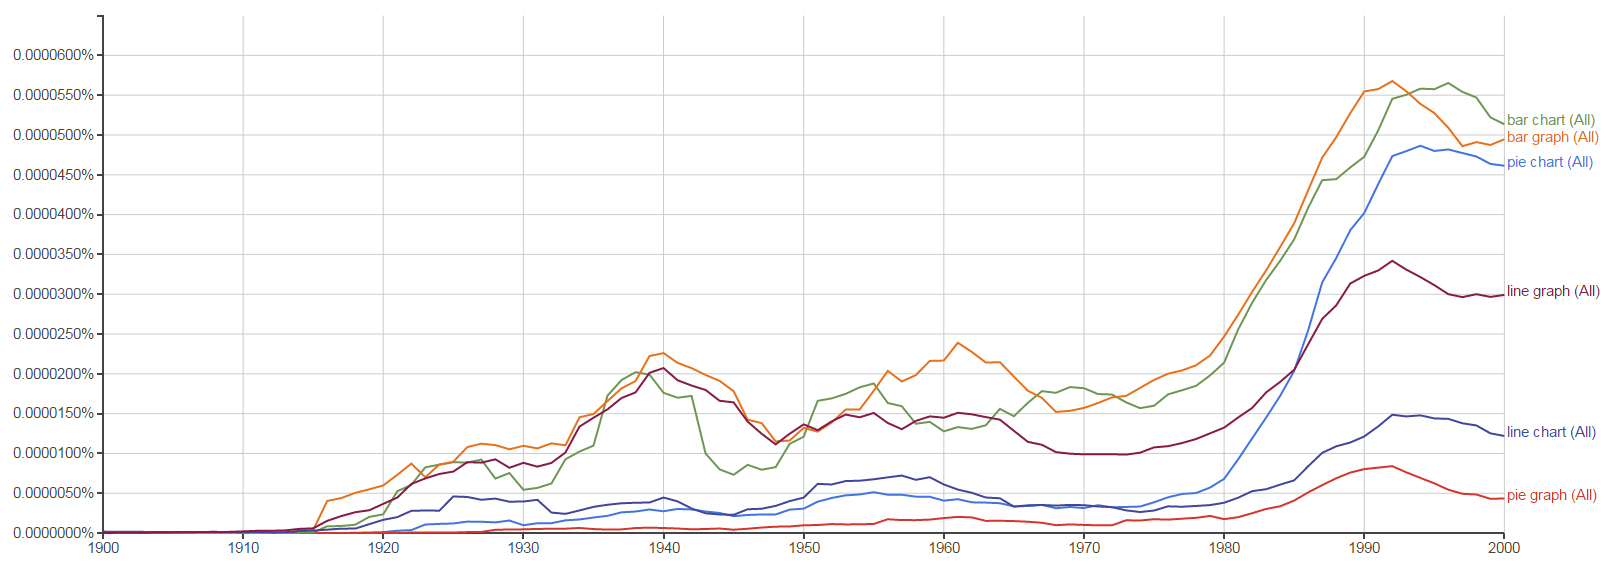 hight resolution of an ngram chart showing the relative occurrences of pie chart pie graph bar chart